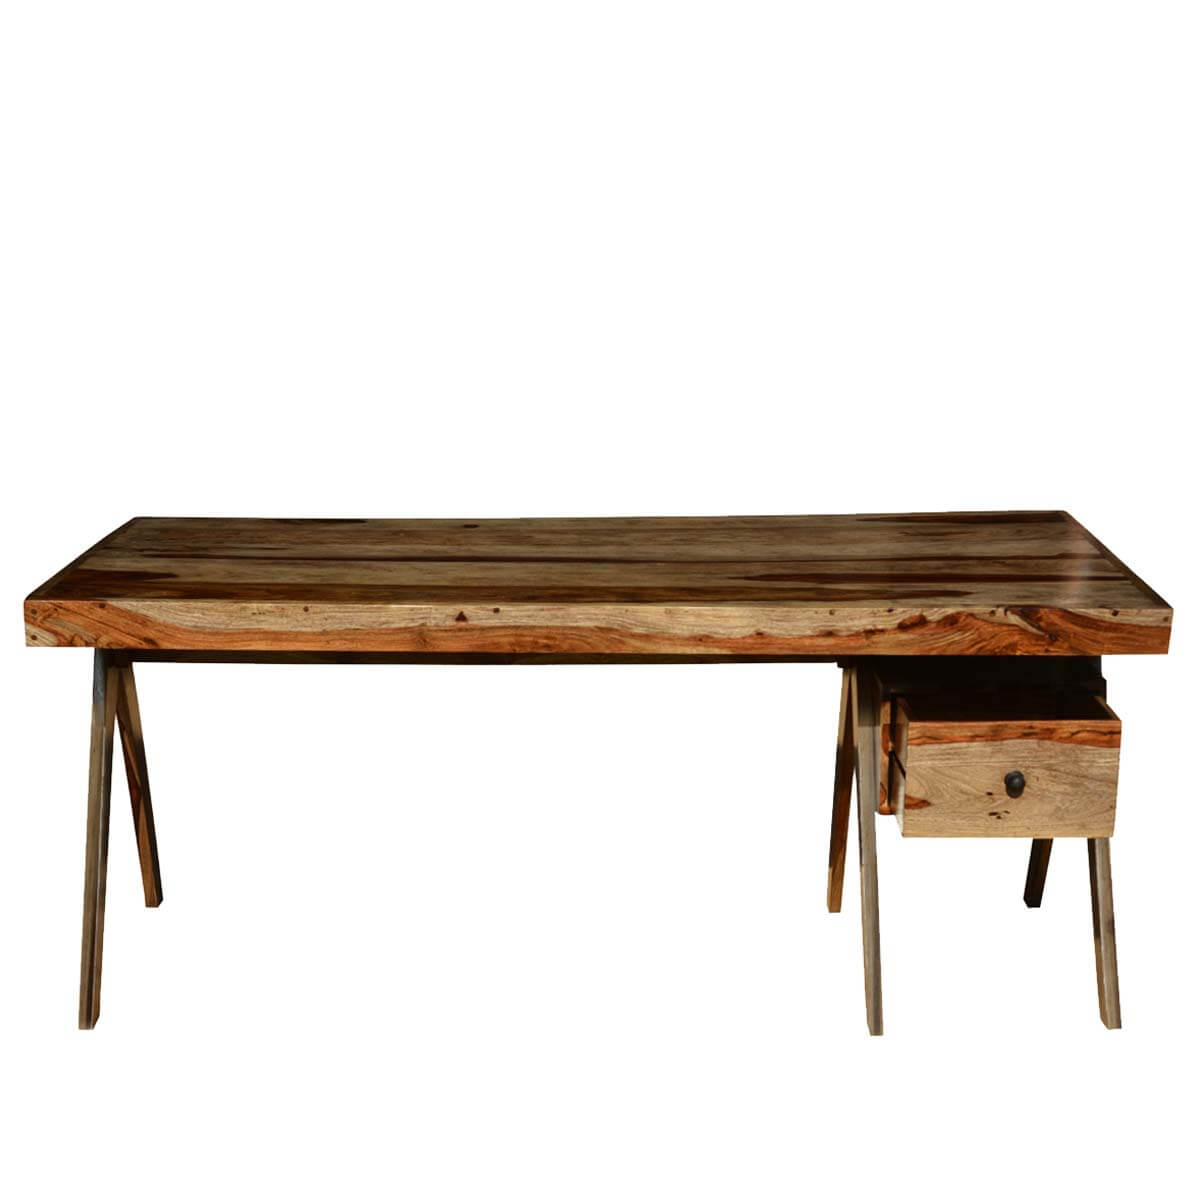 Rustic Artist Solid Wood 72 Dining Table With Drawer: dining table with drawer